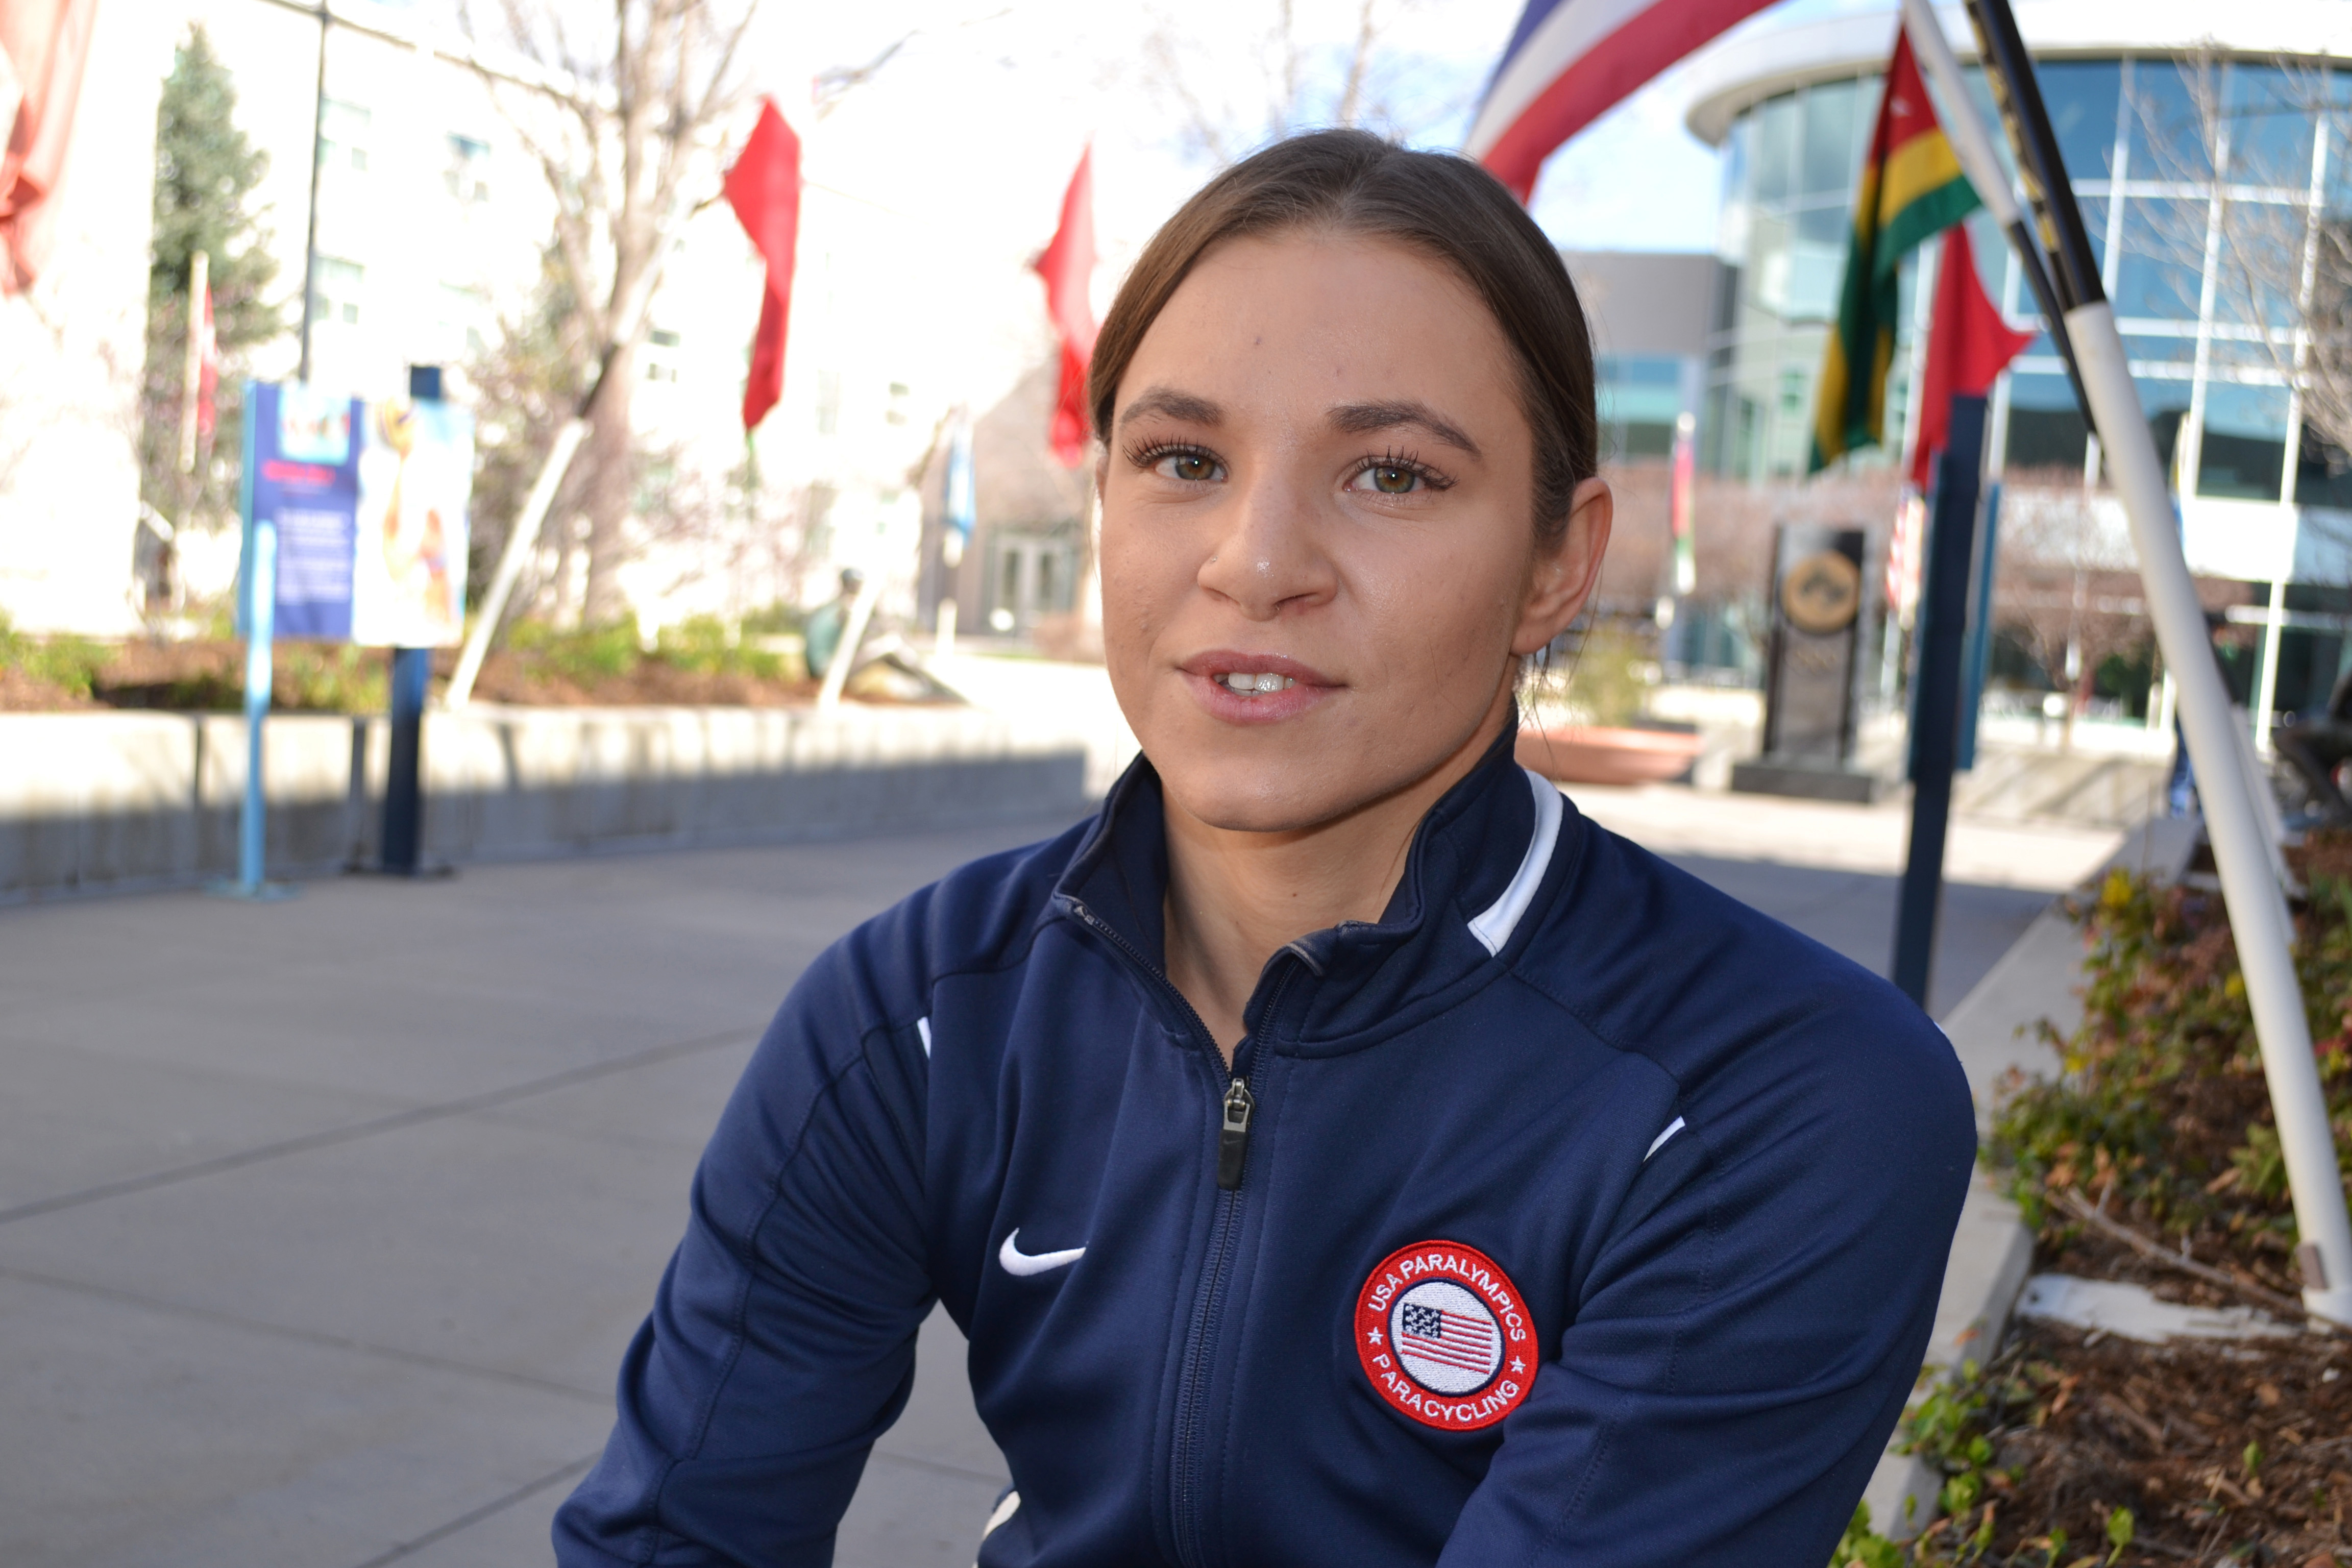 In this April 12, 2016 photo, Paralympian Oksana Masters talks during an interview at the Olympic Training Center, in Colorado Springs, Colo. Masters was adopted out of a Ukrainian orphanage by an American woman nearly two decades ago. The malnourished Ma